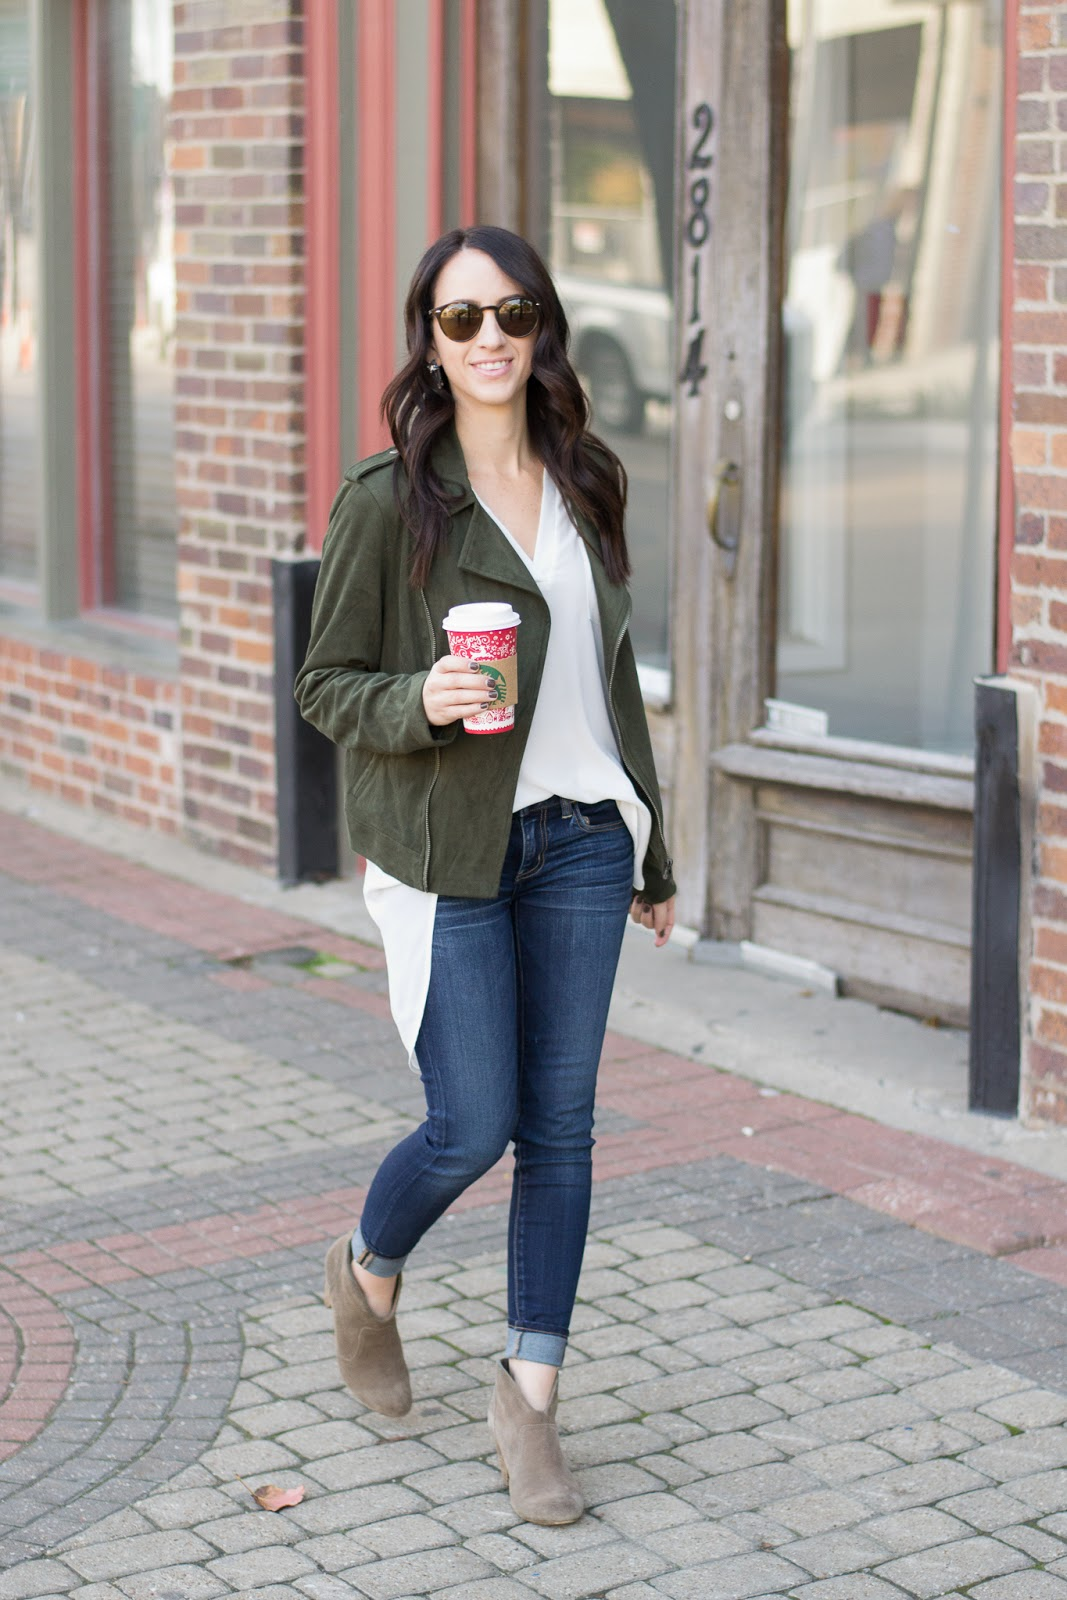 Casual Fall Style in skinny jeans, booties and moto jacket